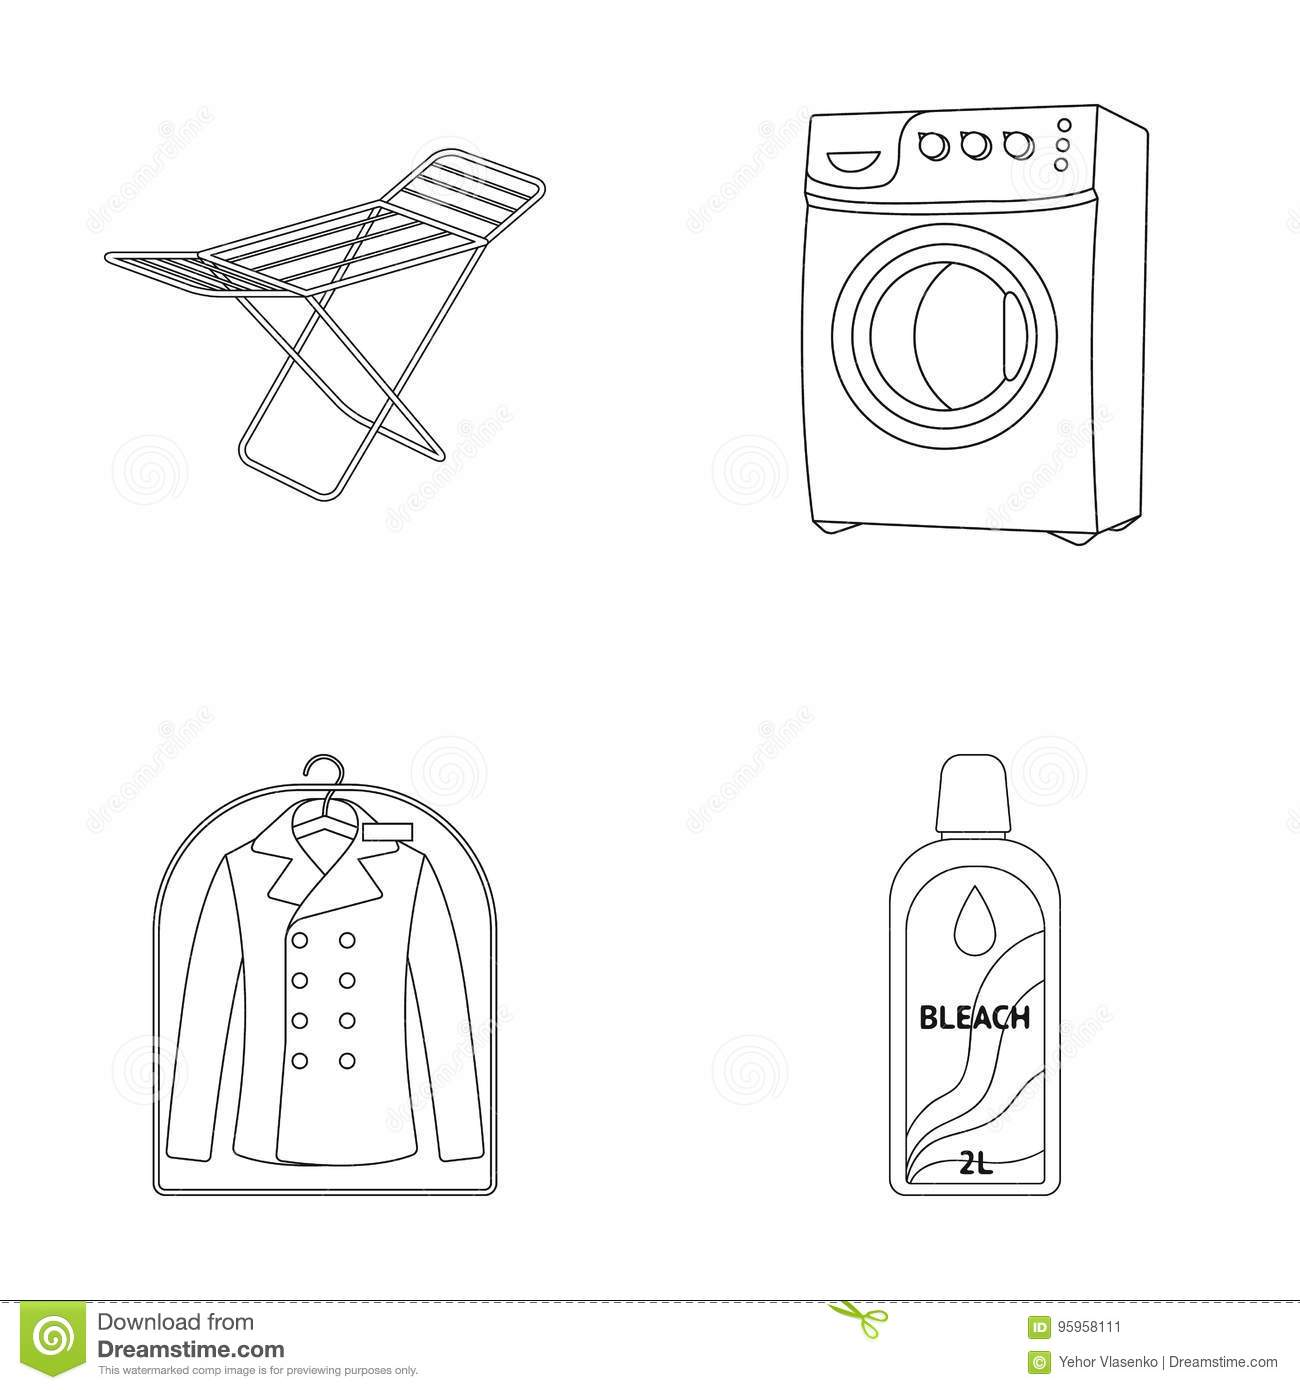 Dryer washing machine clean clothes bleach dry cleaning set dryer washing machine clean clothes bleach dry cleaning set collection icons in outline style vector symbol stock buycottarizona Choice Image